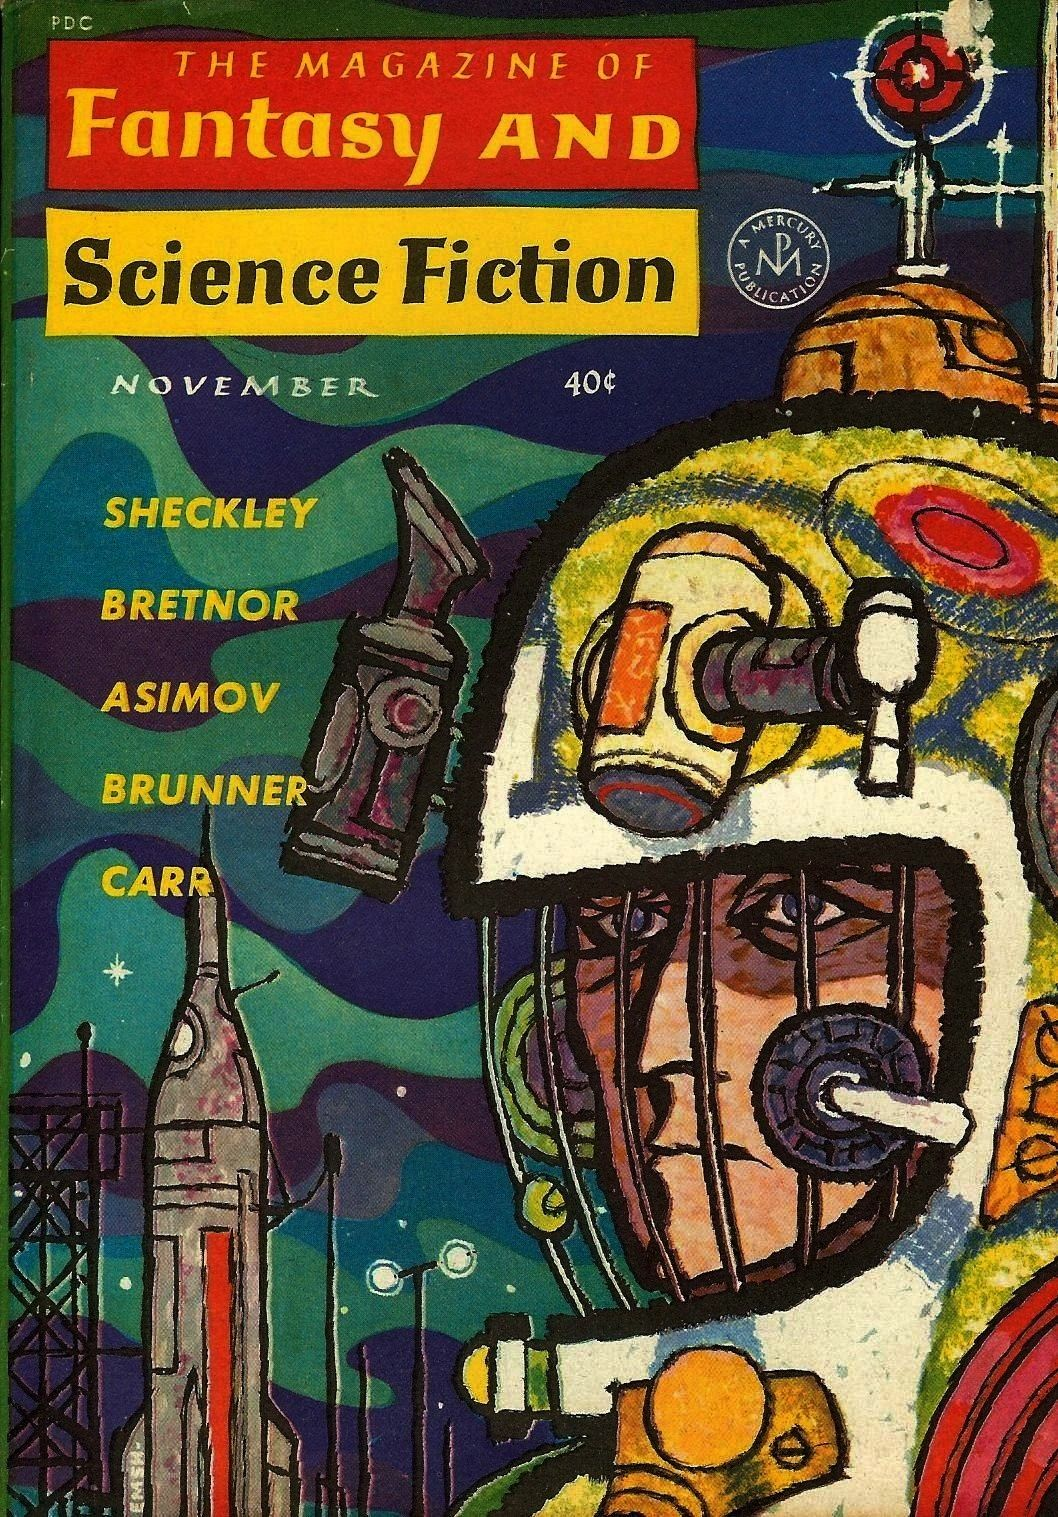 on the cover of The Magazine of Fantasy and Science Fiction November 1962 Ed Emshwiller art on the cover of The Magazine of Fantasy and Science Fiction November 1962  Lea...